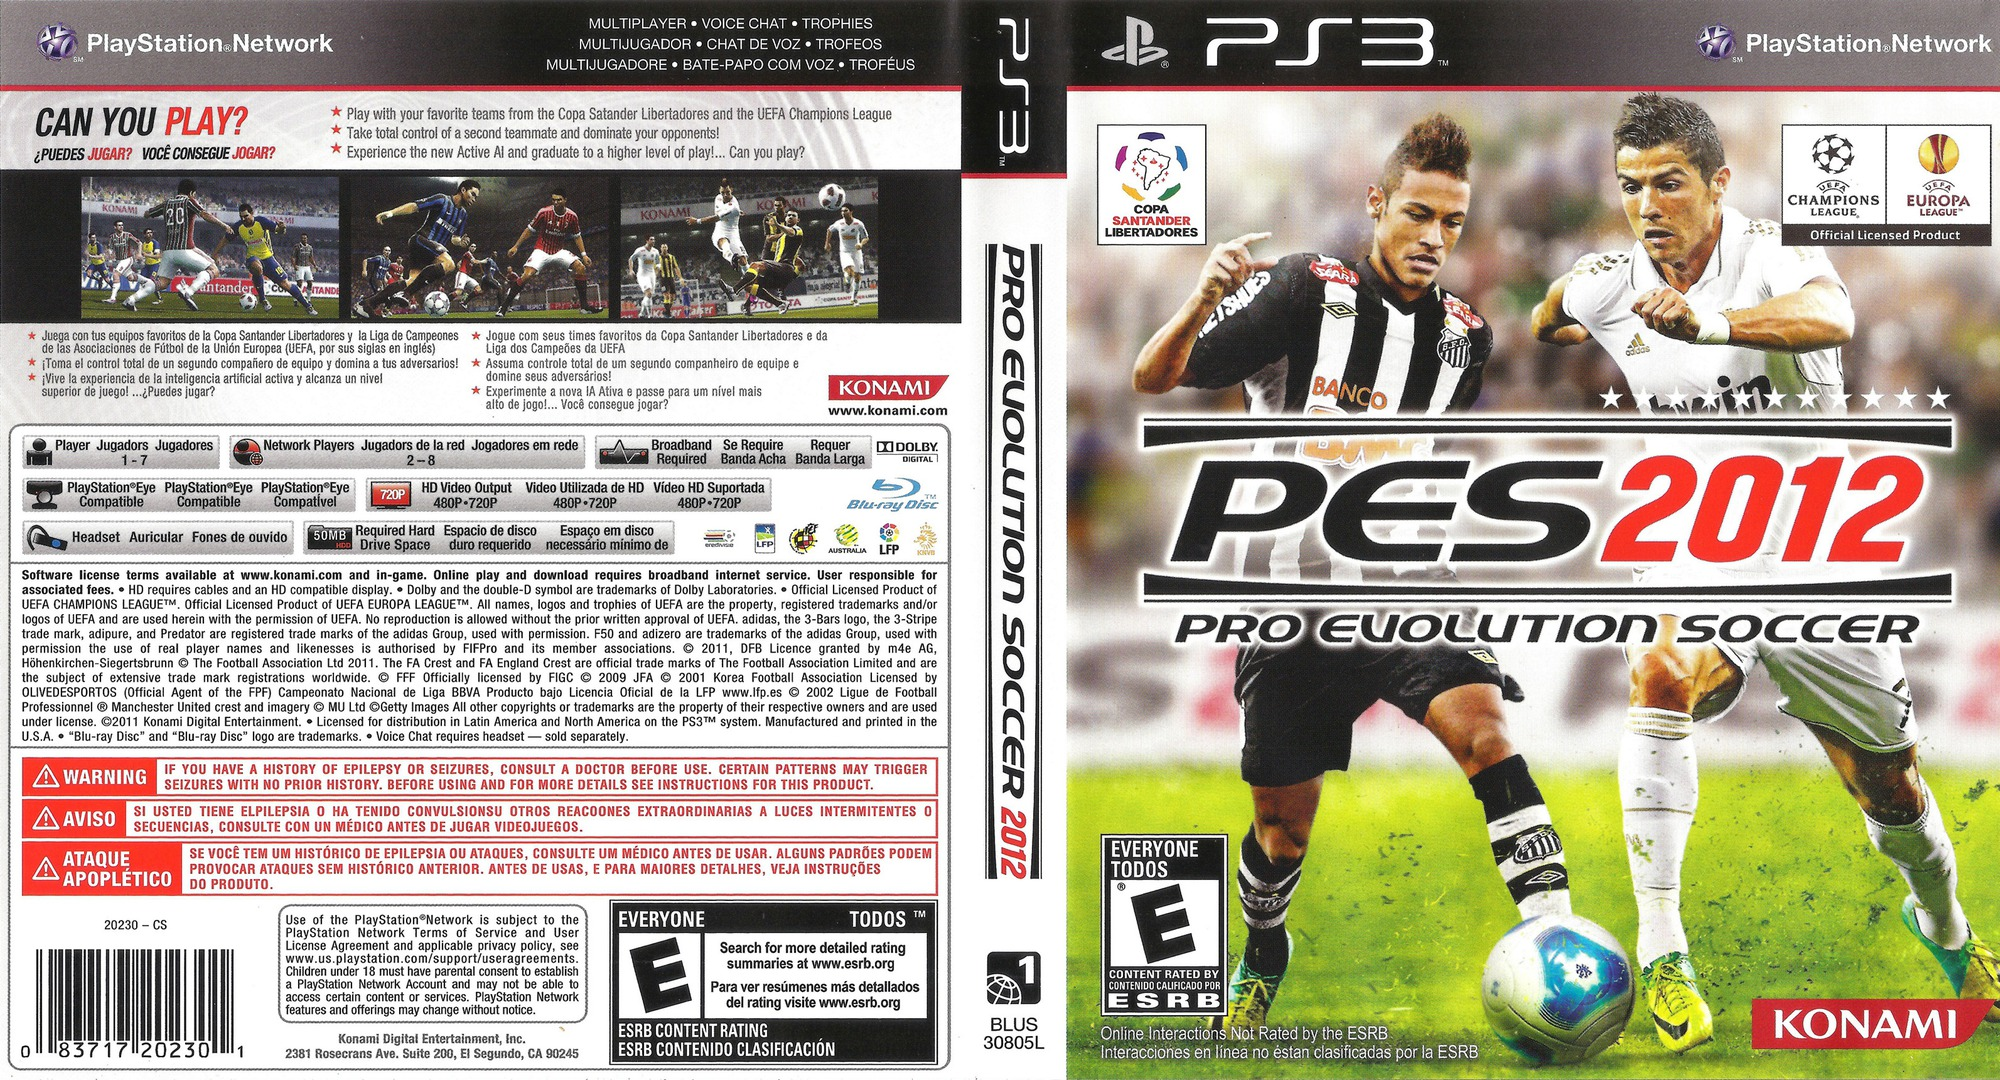 Pro Evolution Soccer 2012 PS3 coverfullHQ (BLUS30805)